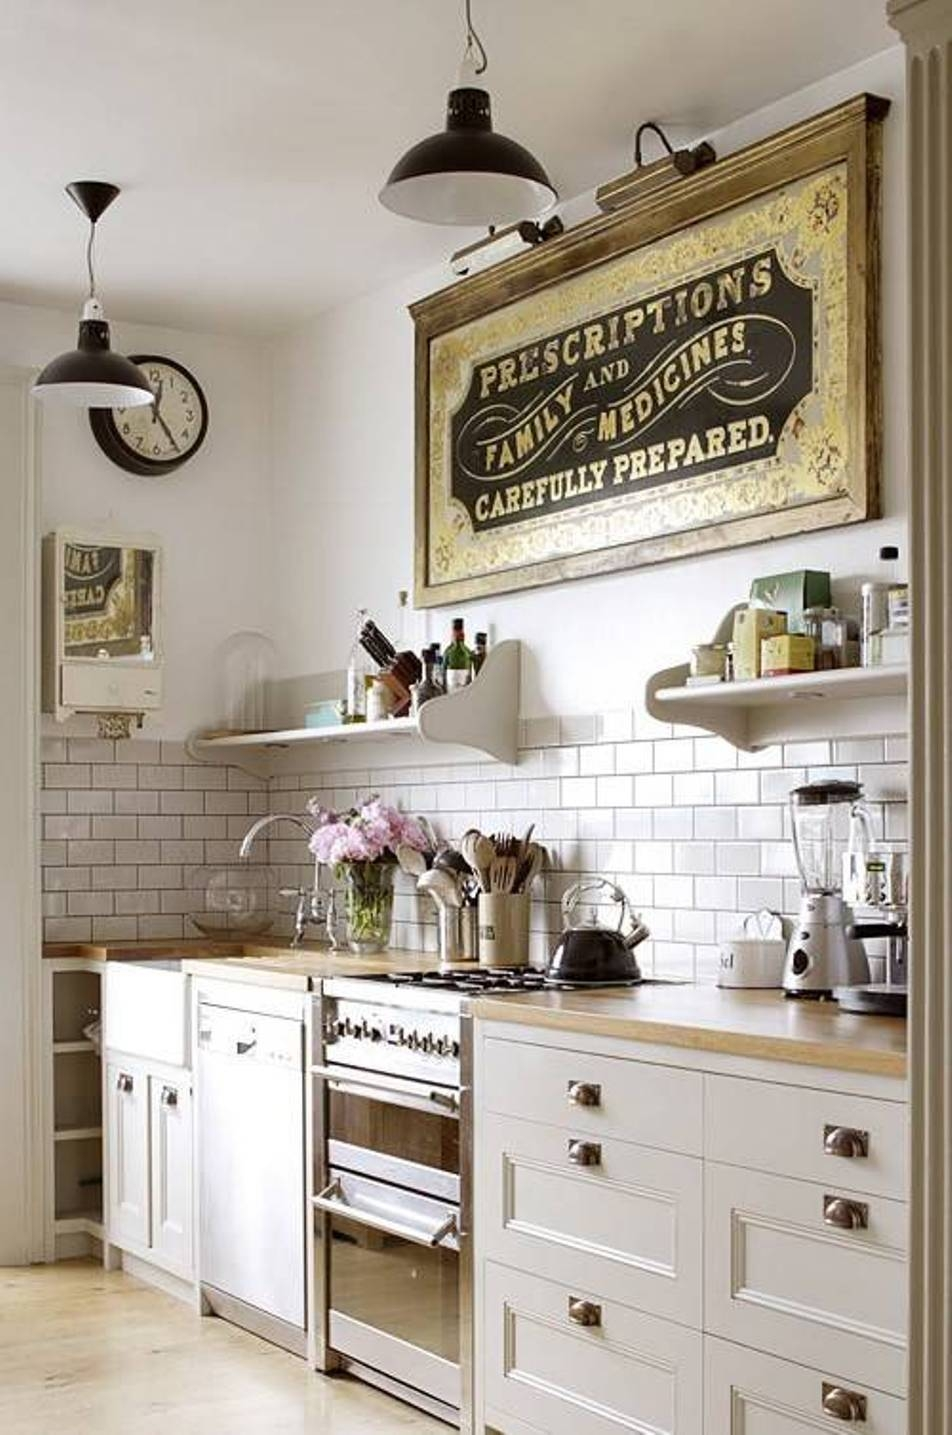 Kitchen : Kitchen Farmhouse Kitchen Decor Ideas With Brick Kitchen In 2018 Large Wall Art For Kitchen (Gallery 1 of 20)